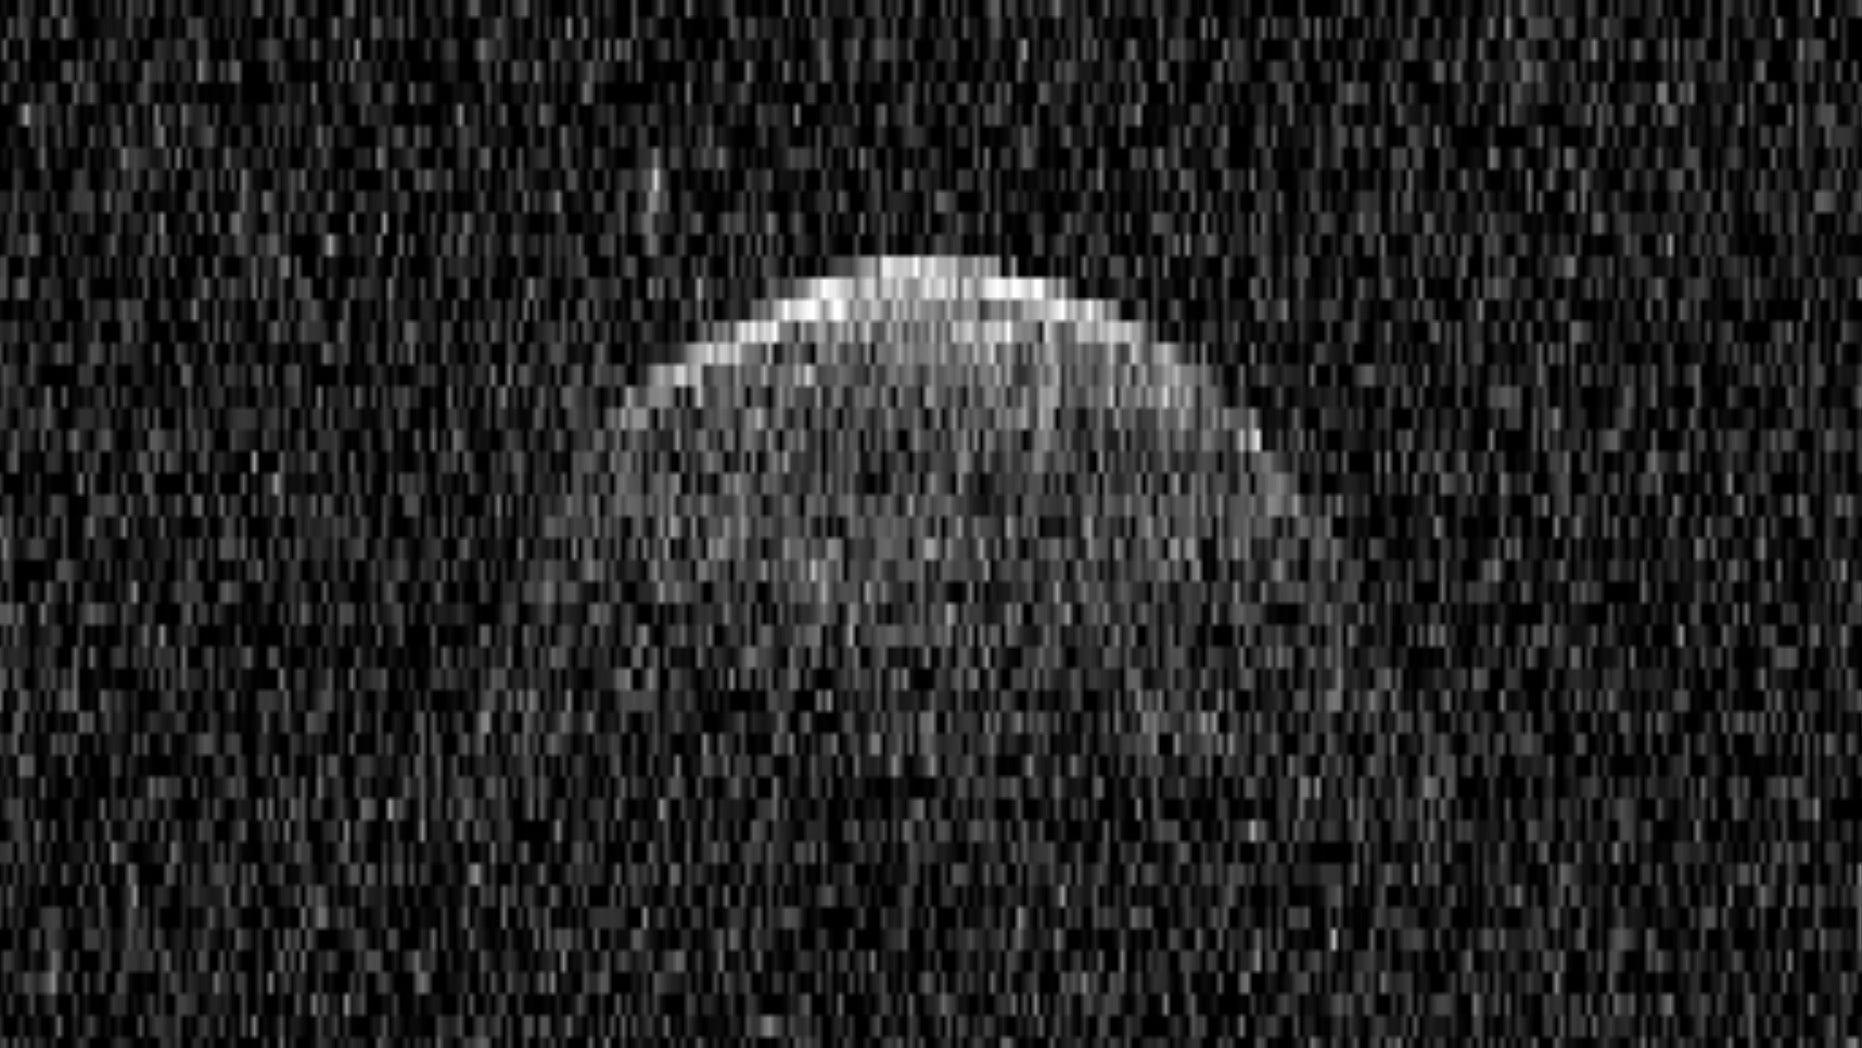 Radar image of asteroid Florence and one of its moons (small bright smudge above the main space rock) obtained on Sep. 1, 2017 using the 70-m antenna at NASA's Goldstone Deep Space Communications complex.